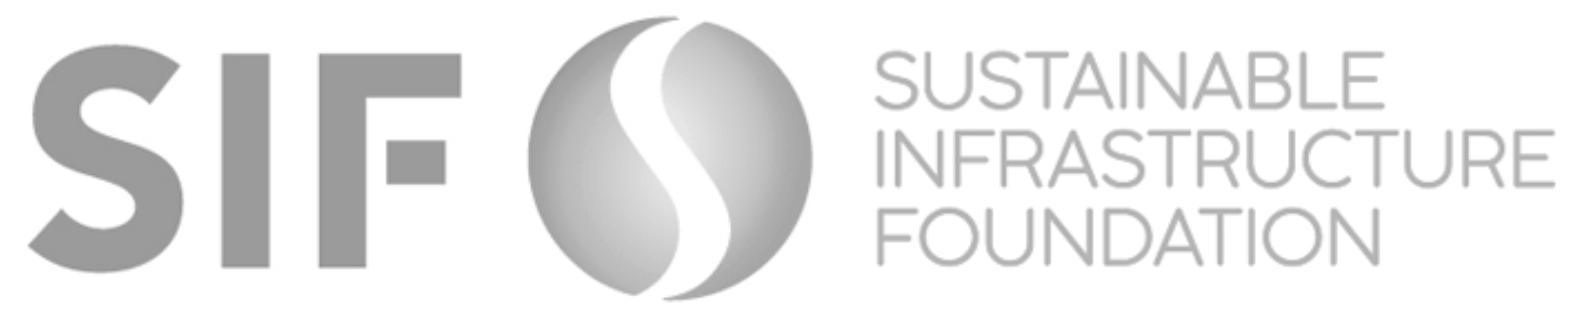 Sustainable Infrastructure Foundation